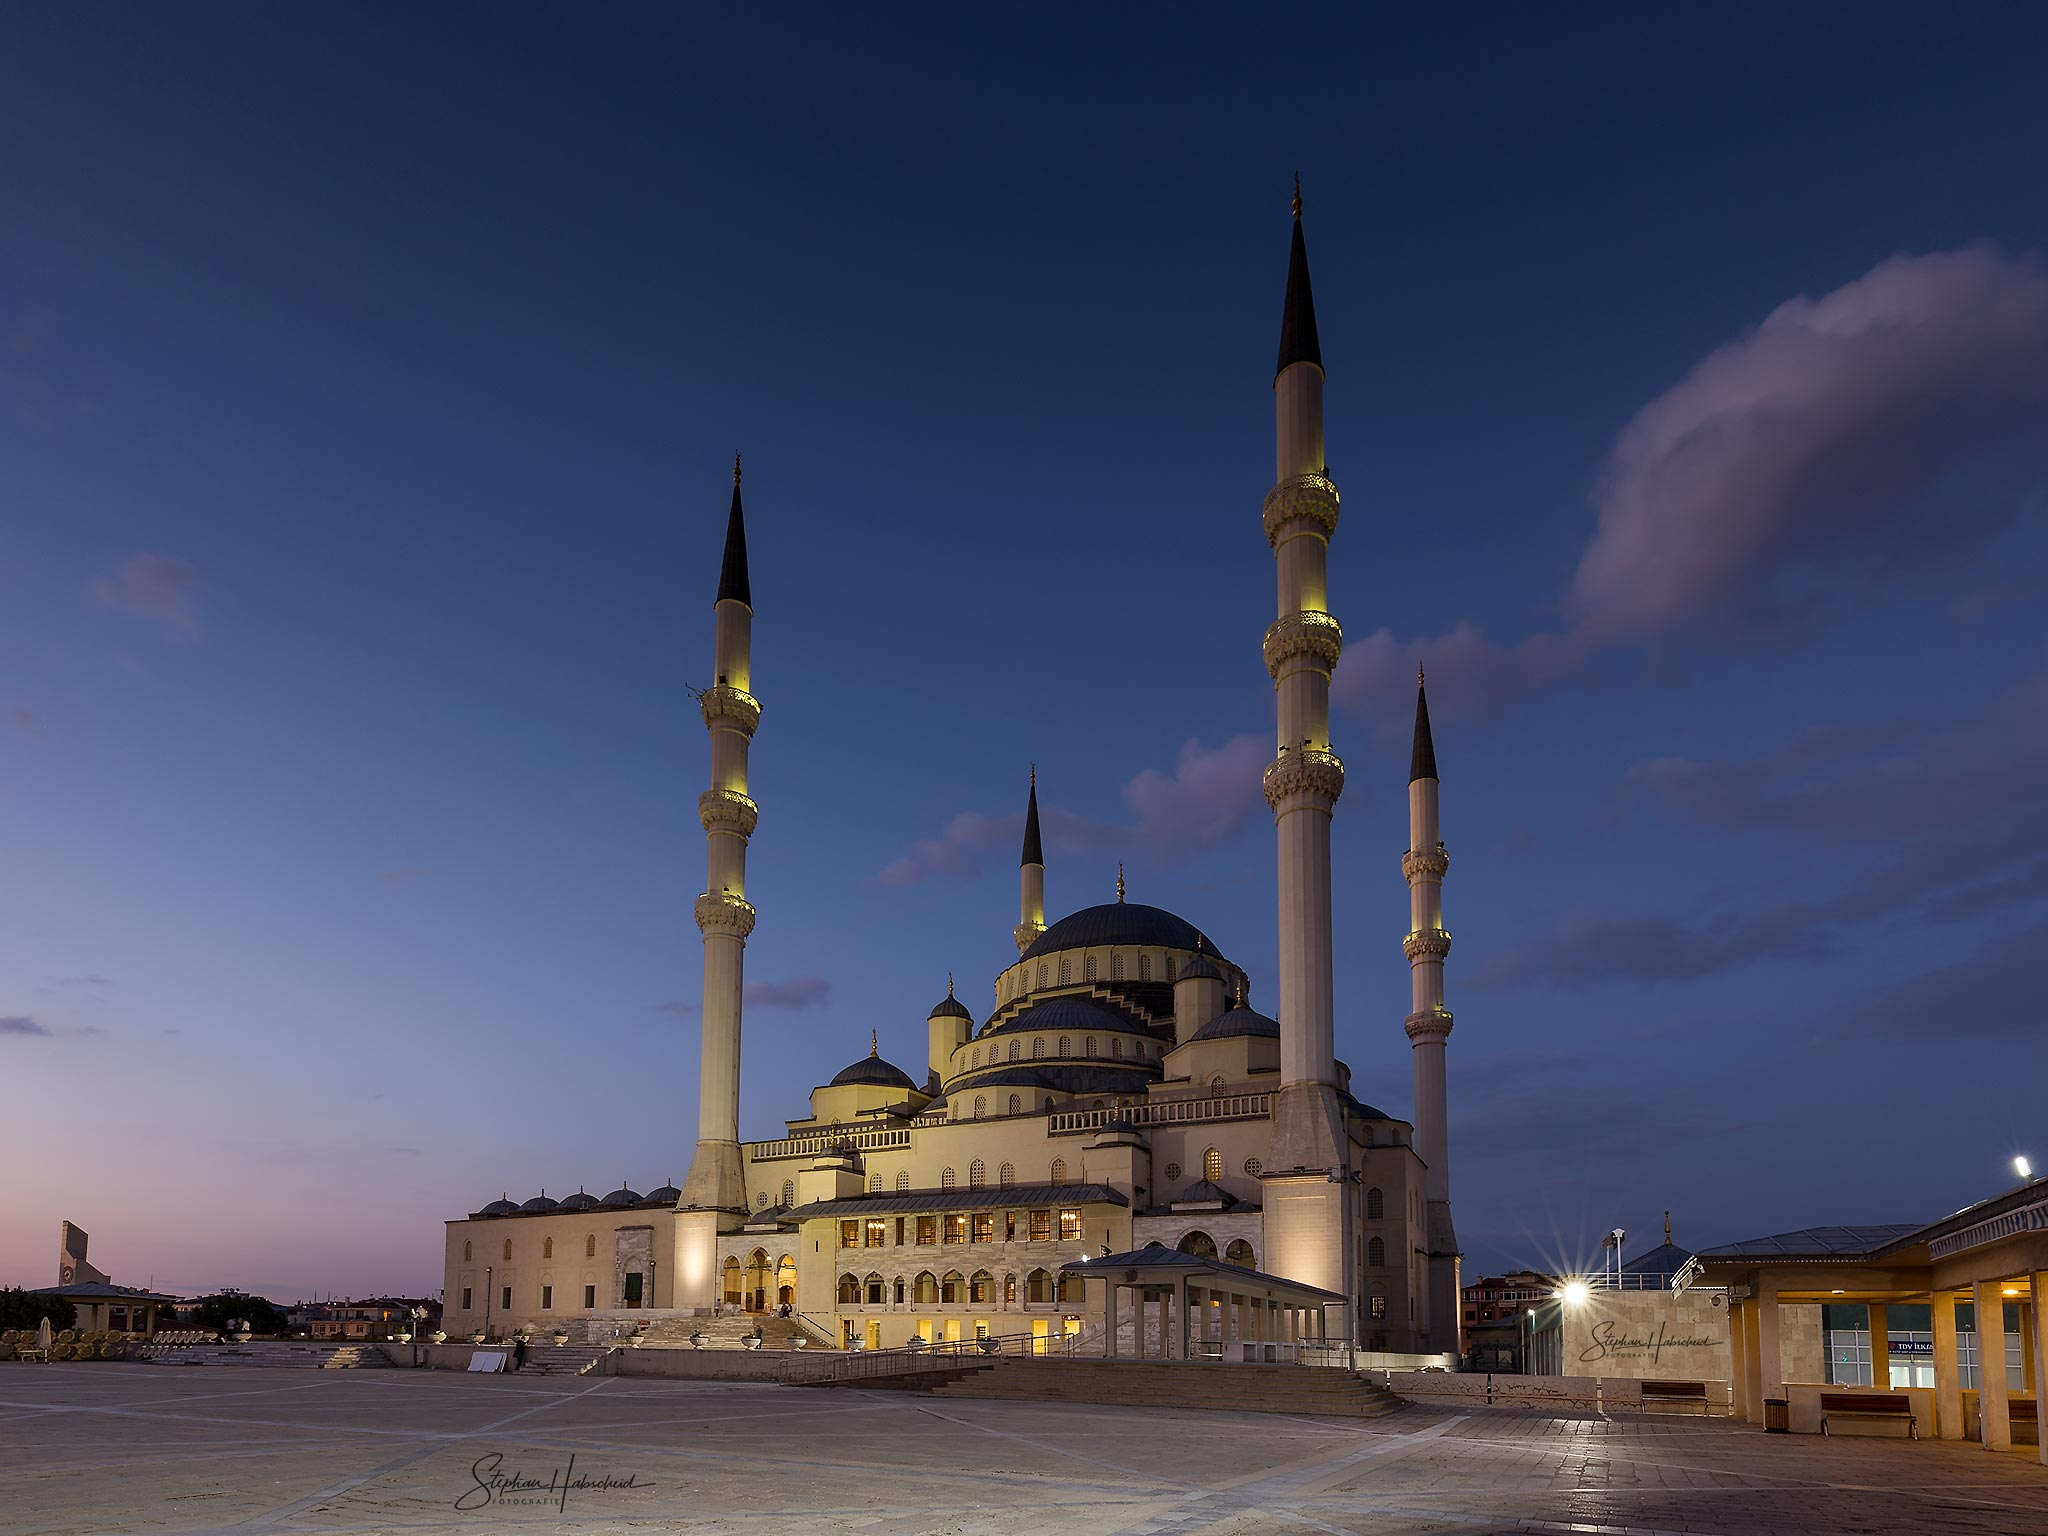 Kocatepe Mosque, Turkey